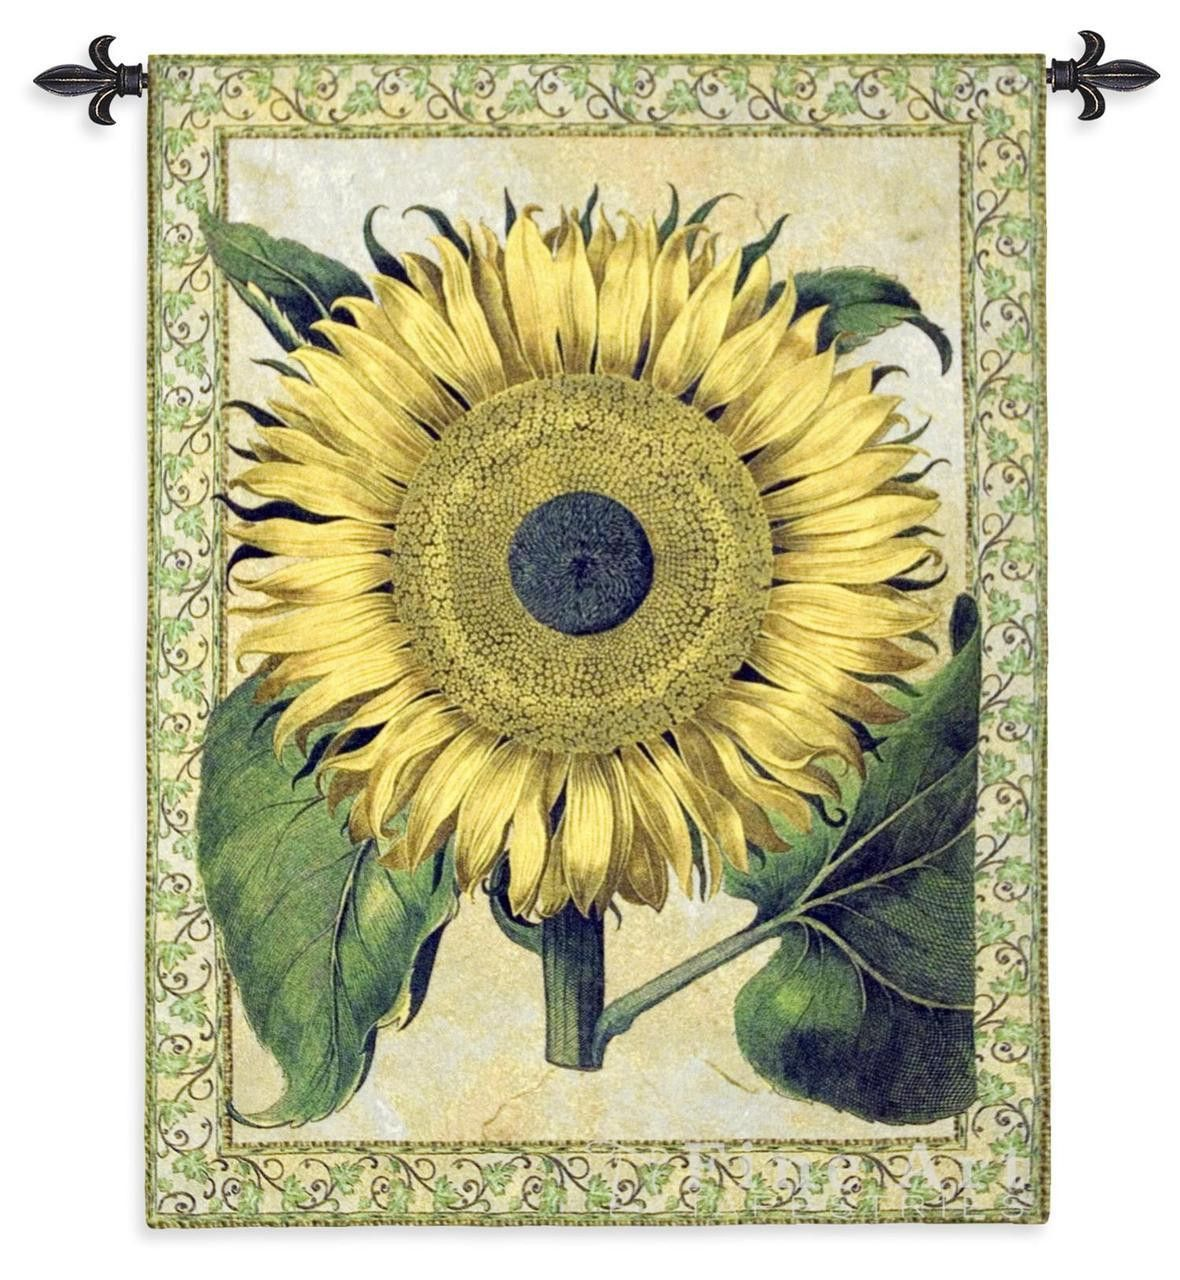 Big Bright Sunflower Art Tapestry Wall Hanging | Art, Tapestry wall ...